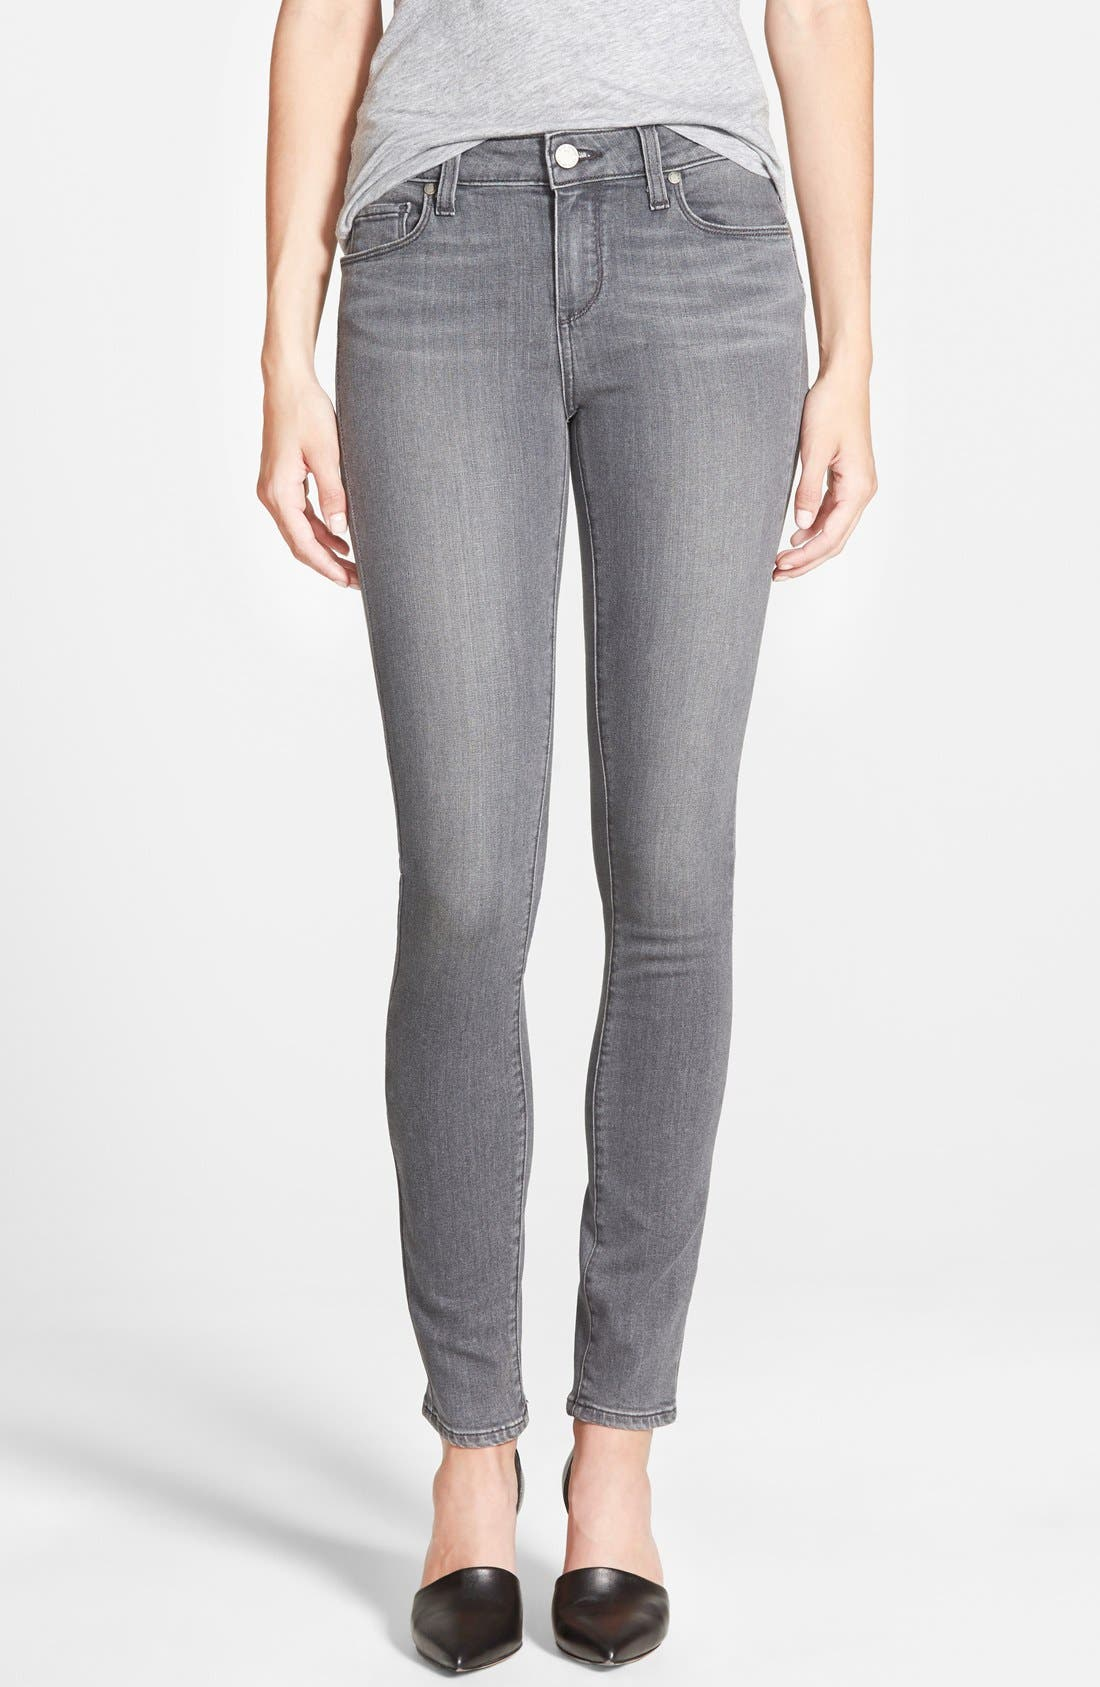 Women's Grey Wash Jeans & Denim | Nordstrom